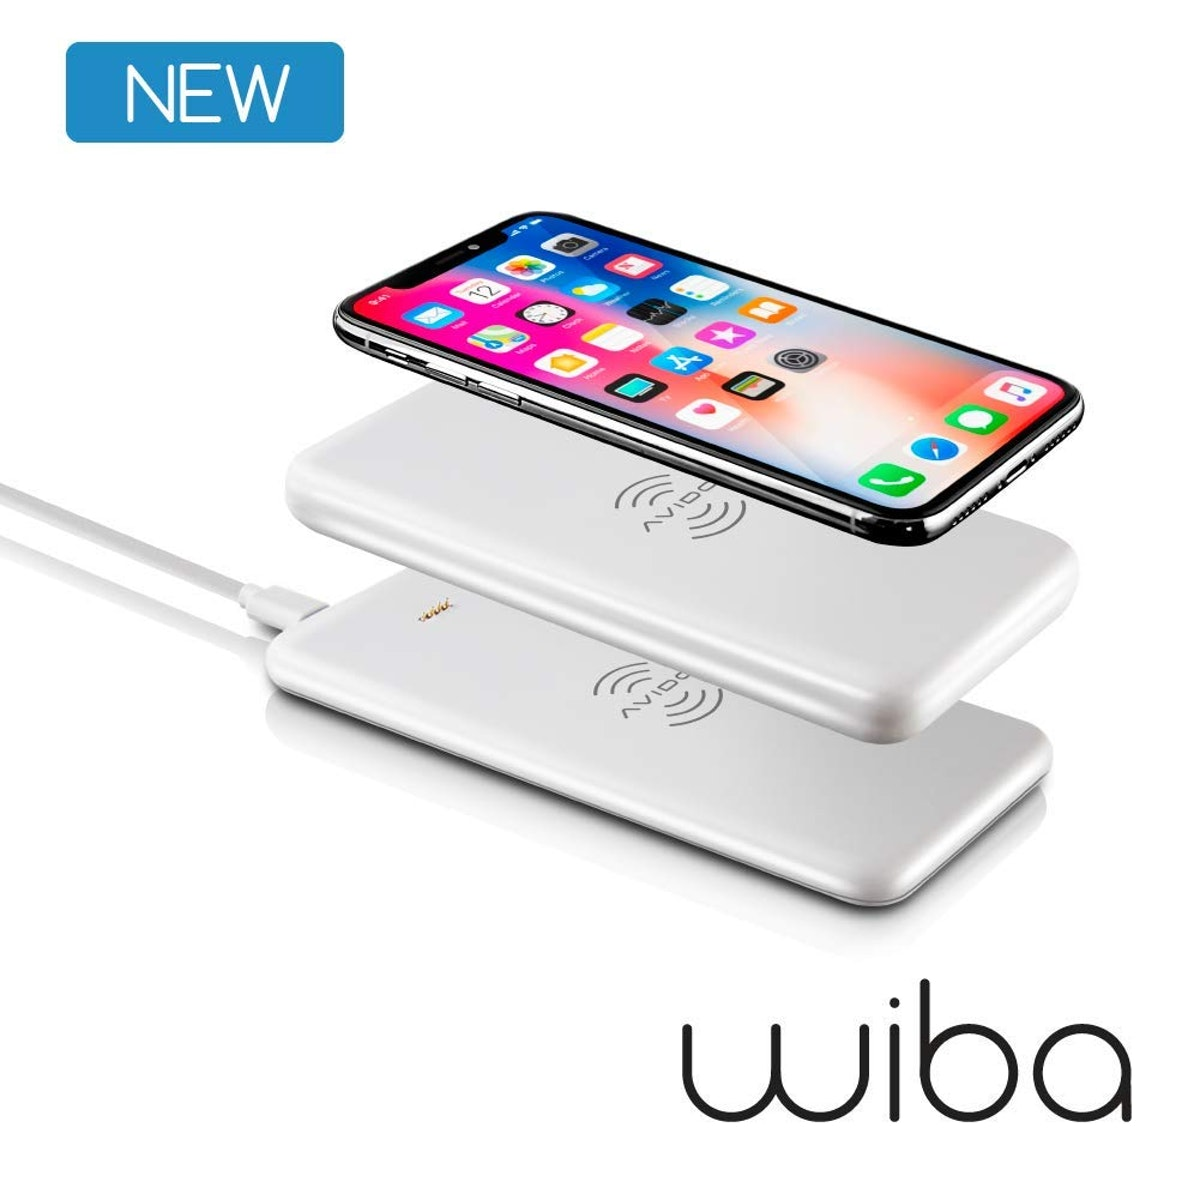 Wireless Portable Charger Bundle: 2-in-1 Power Bank